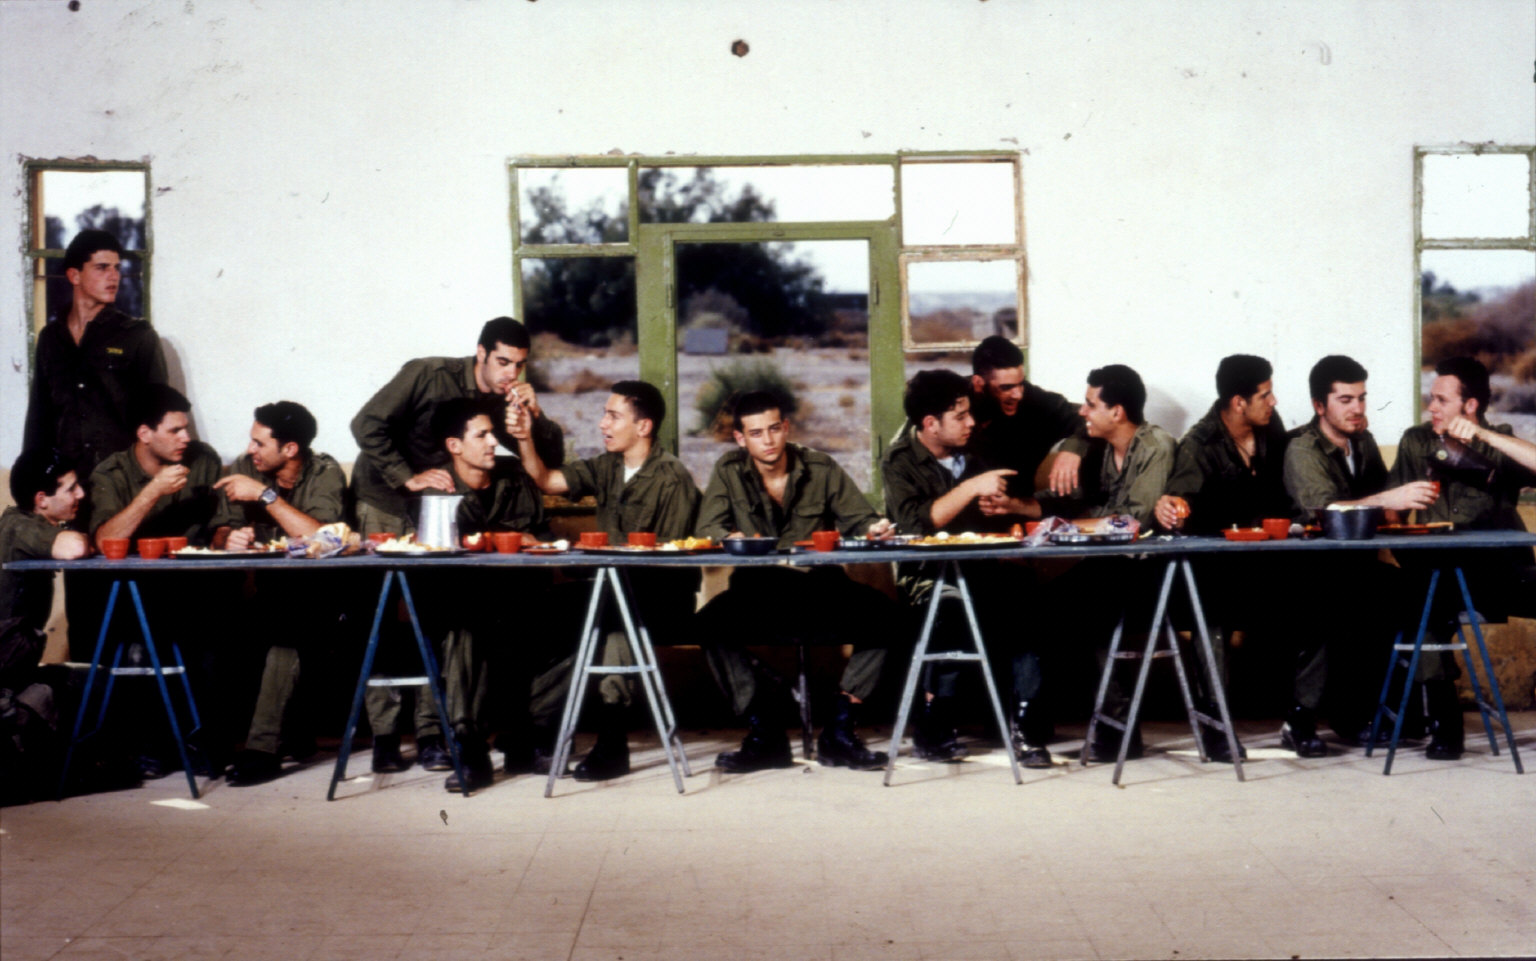 Untitled (The Last Supper)